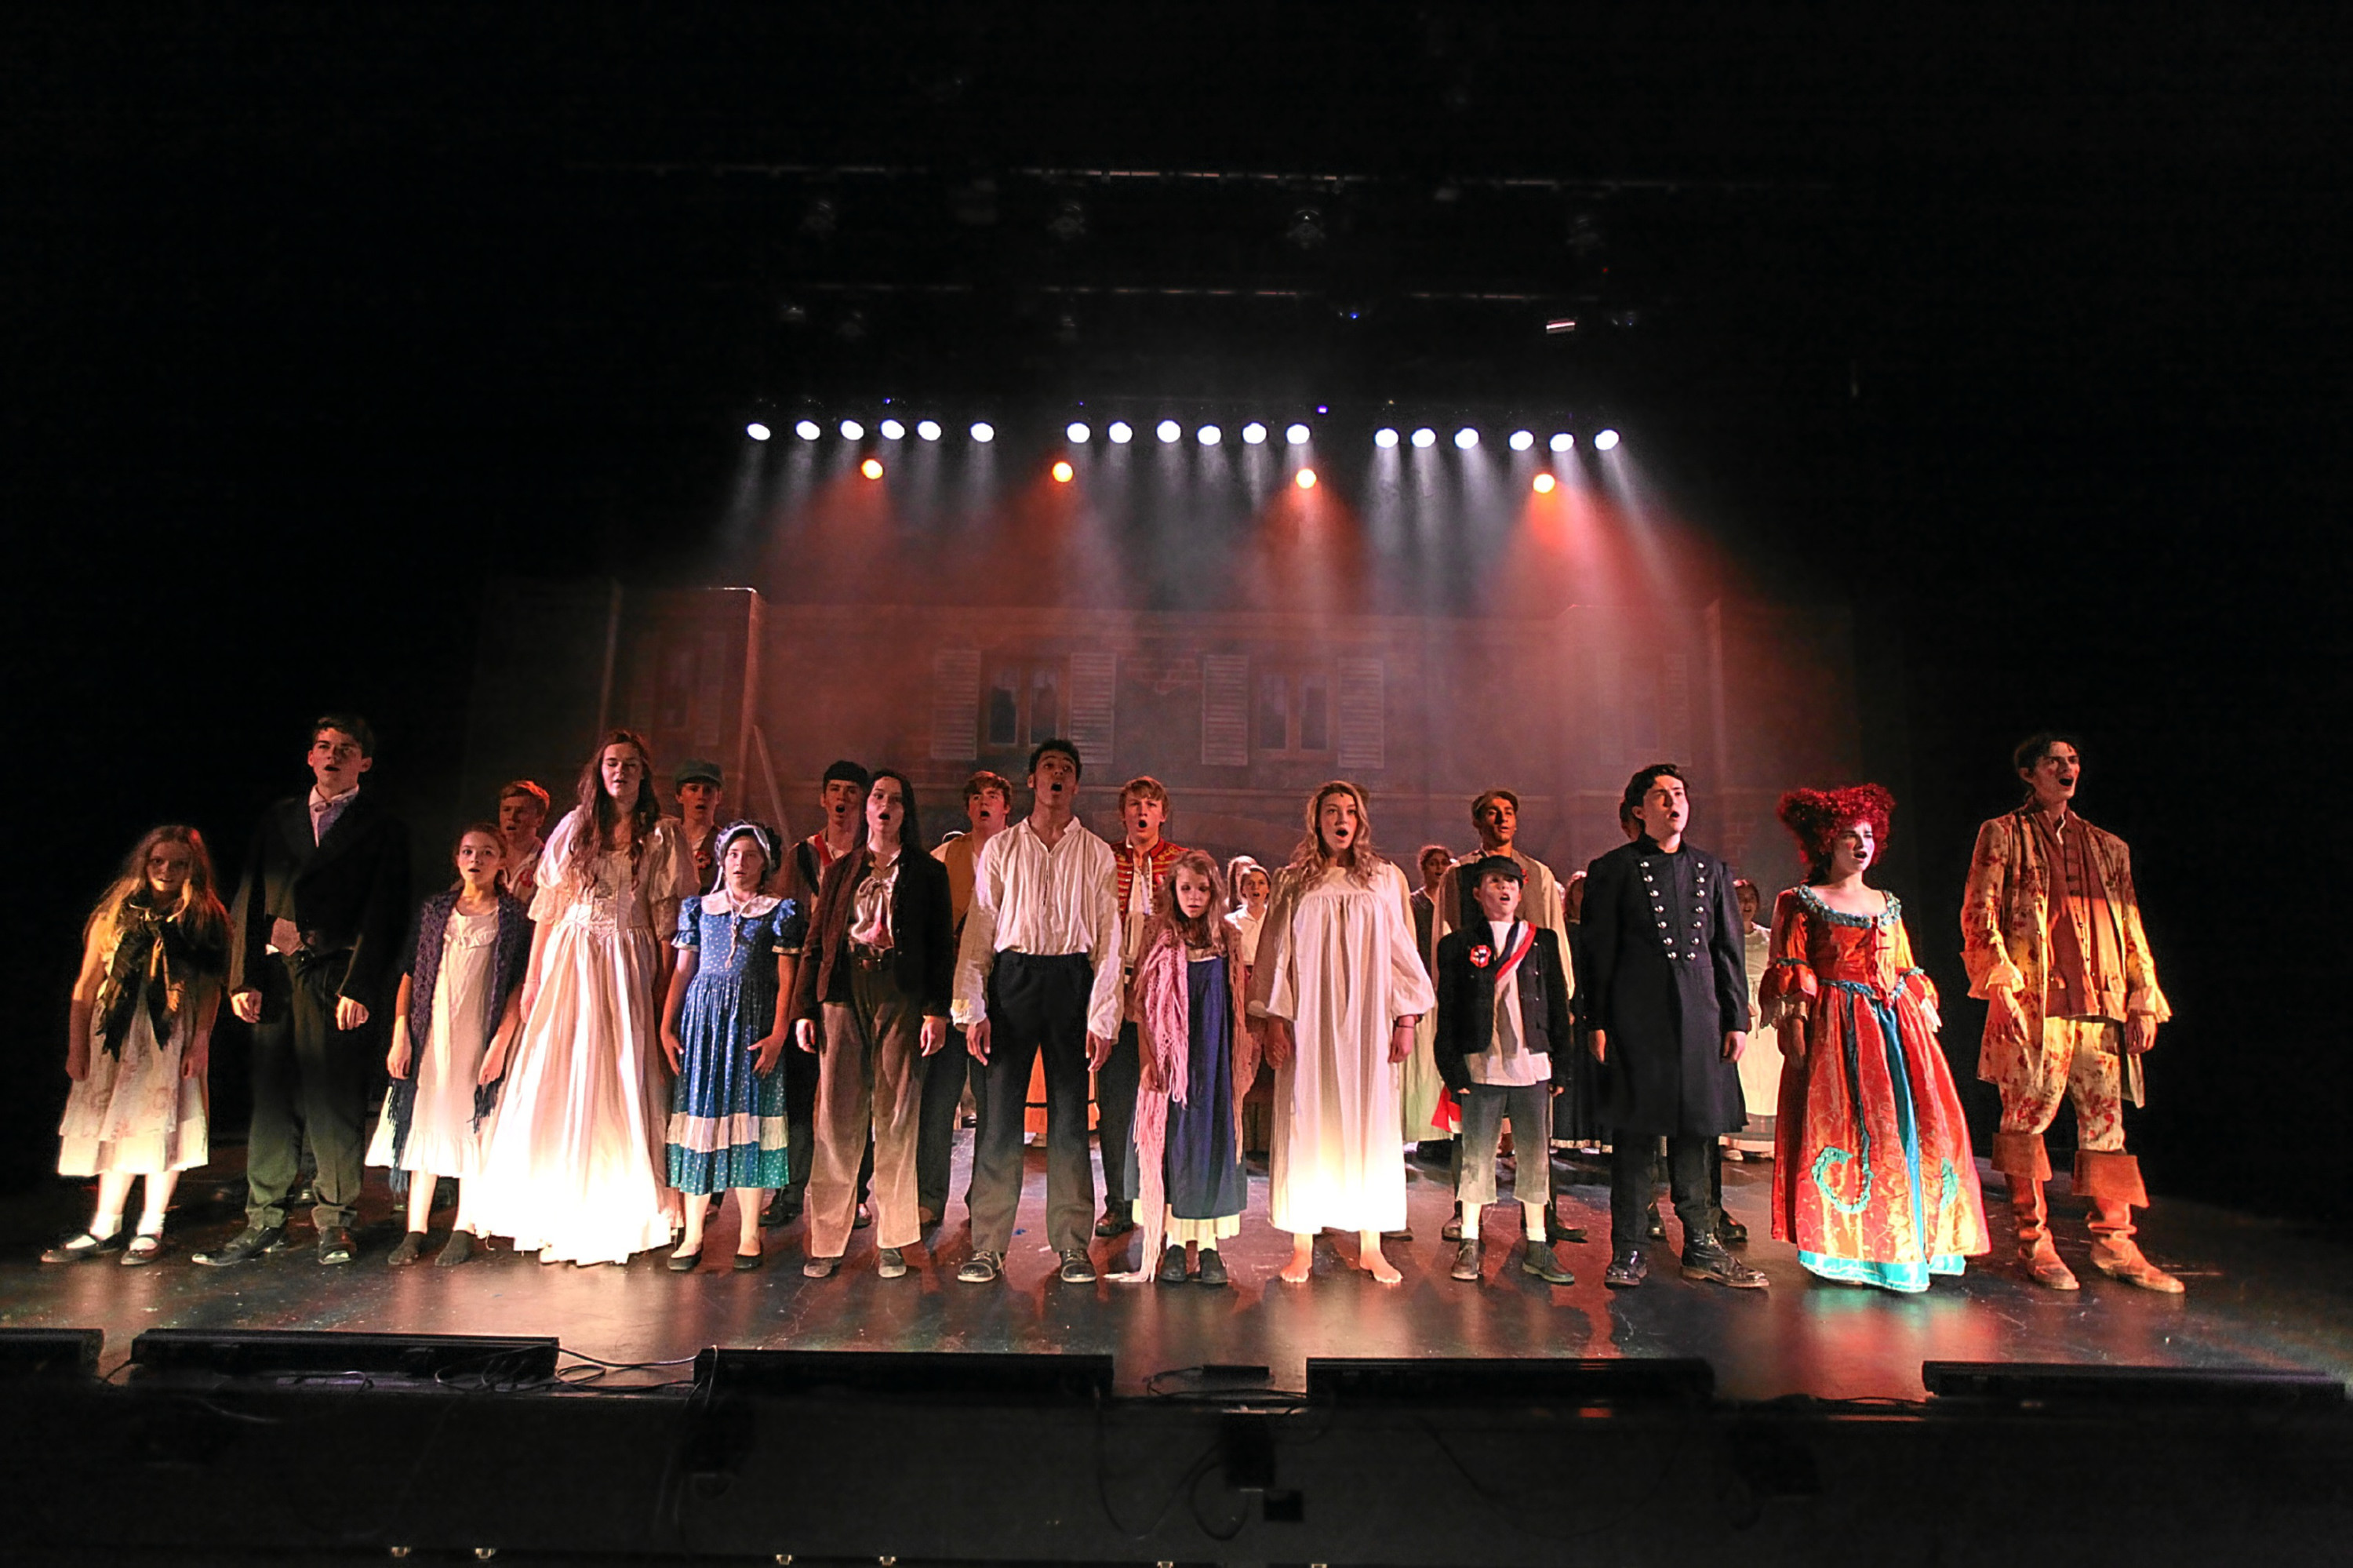 Dundee High students will stage a production of Les Miserables.